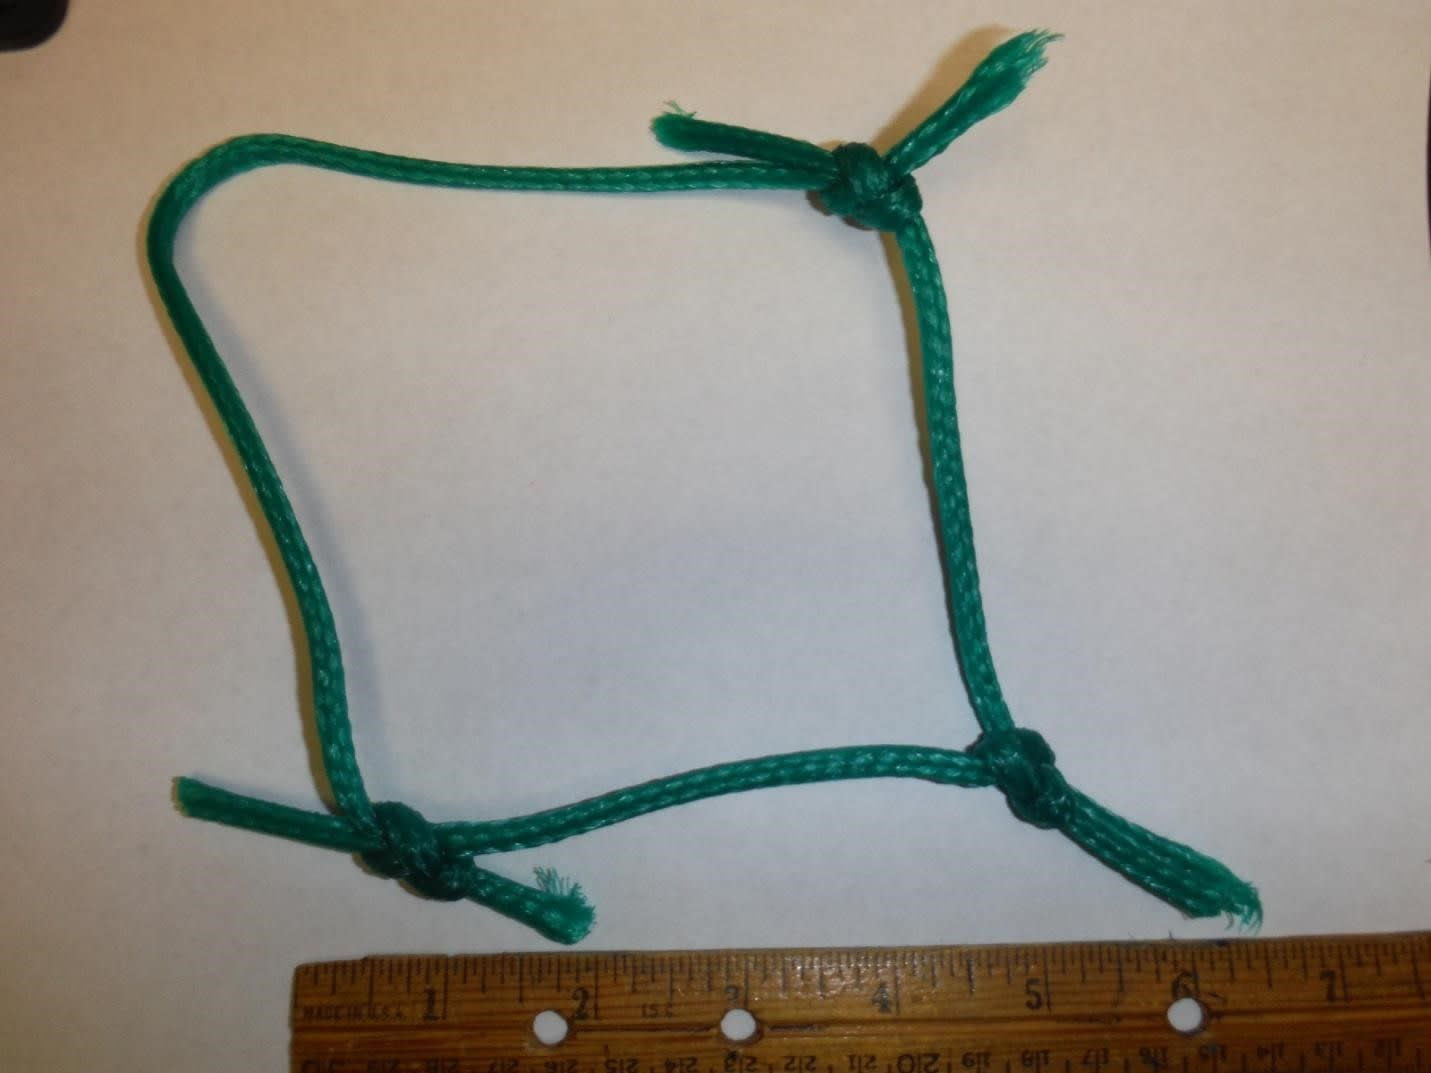 "green-braided, knotted 10"" 3.5mm soccer netting"